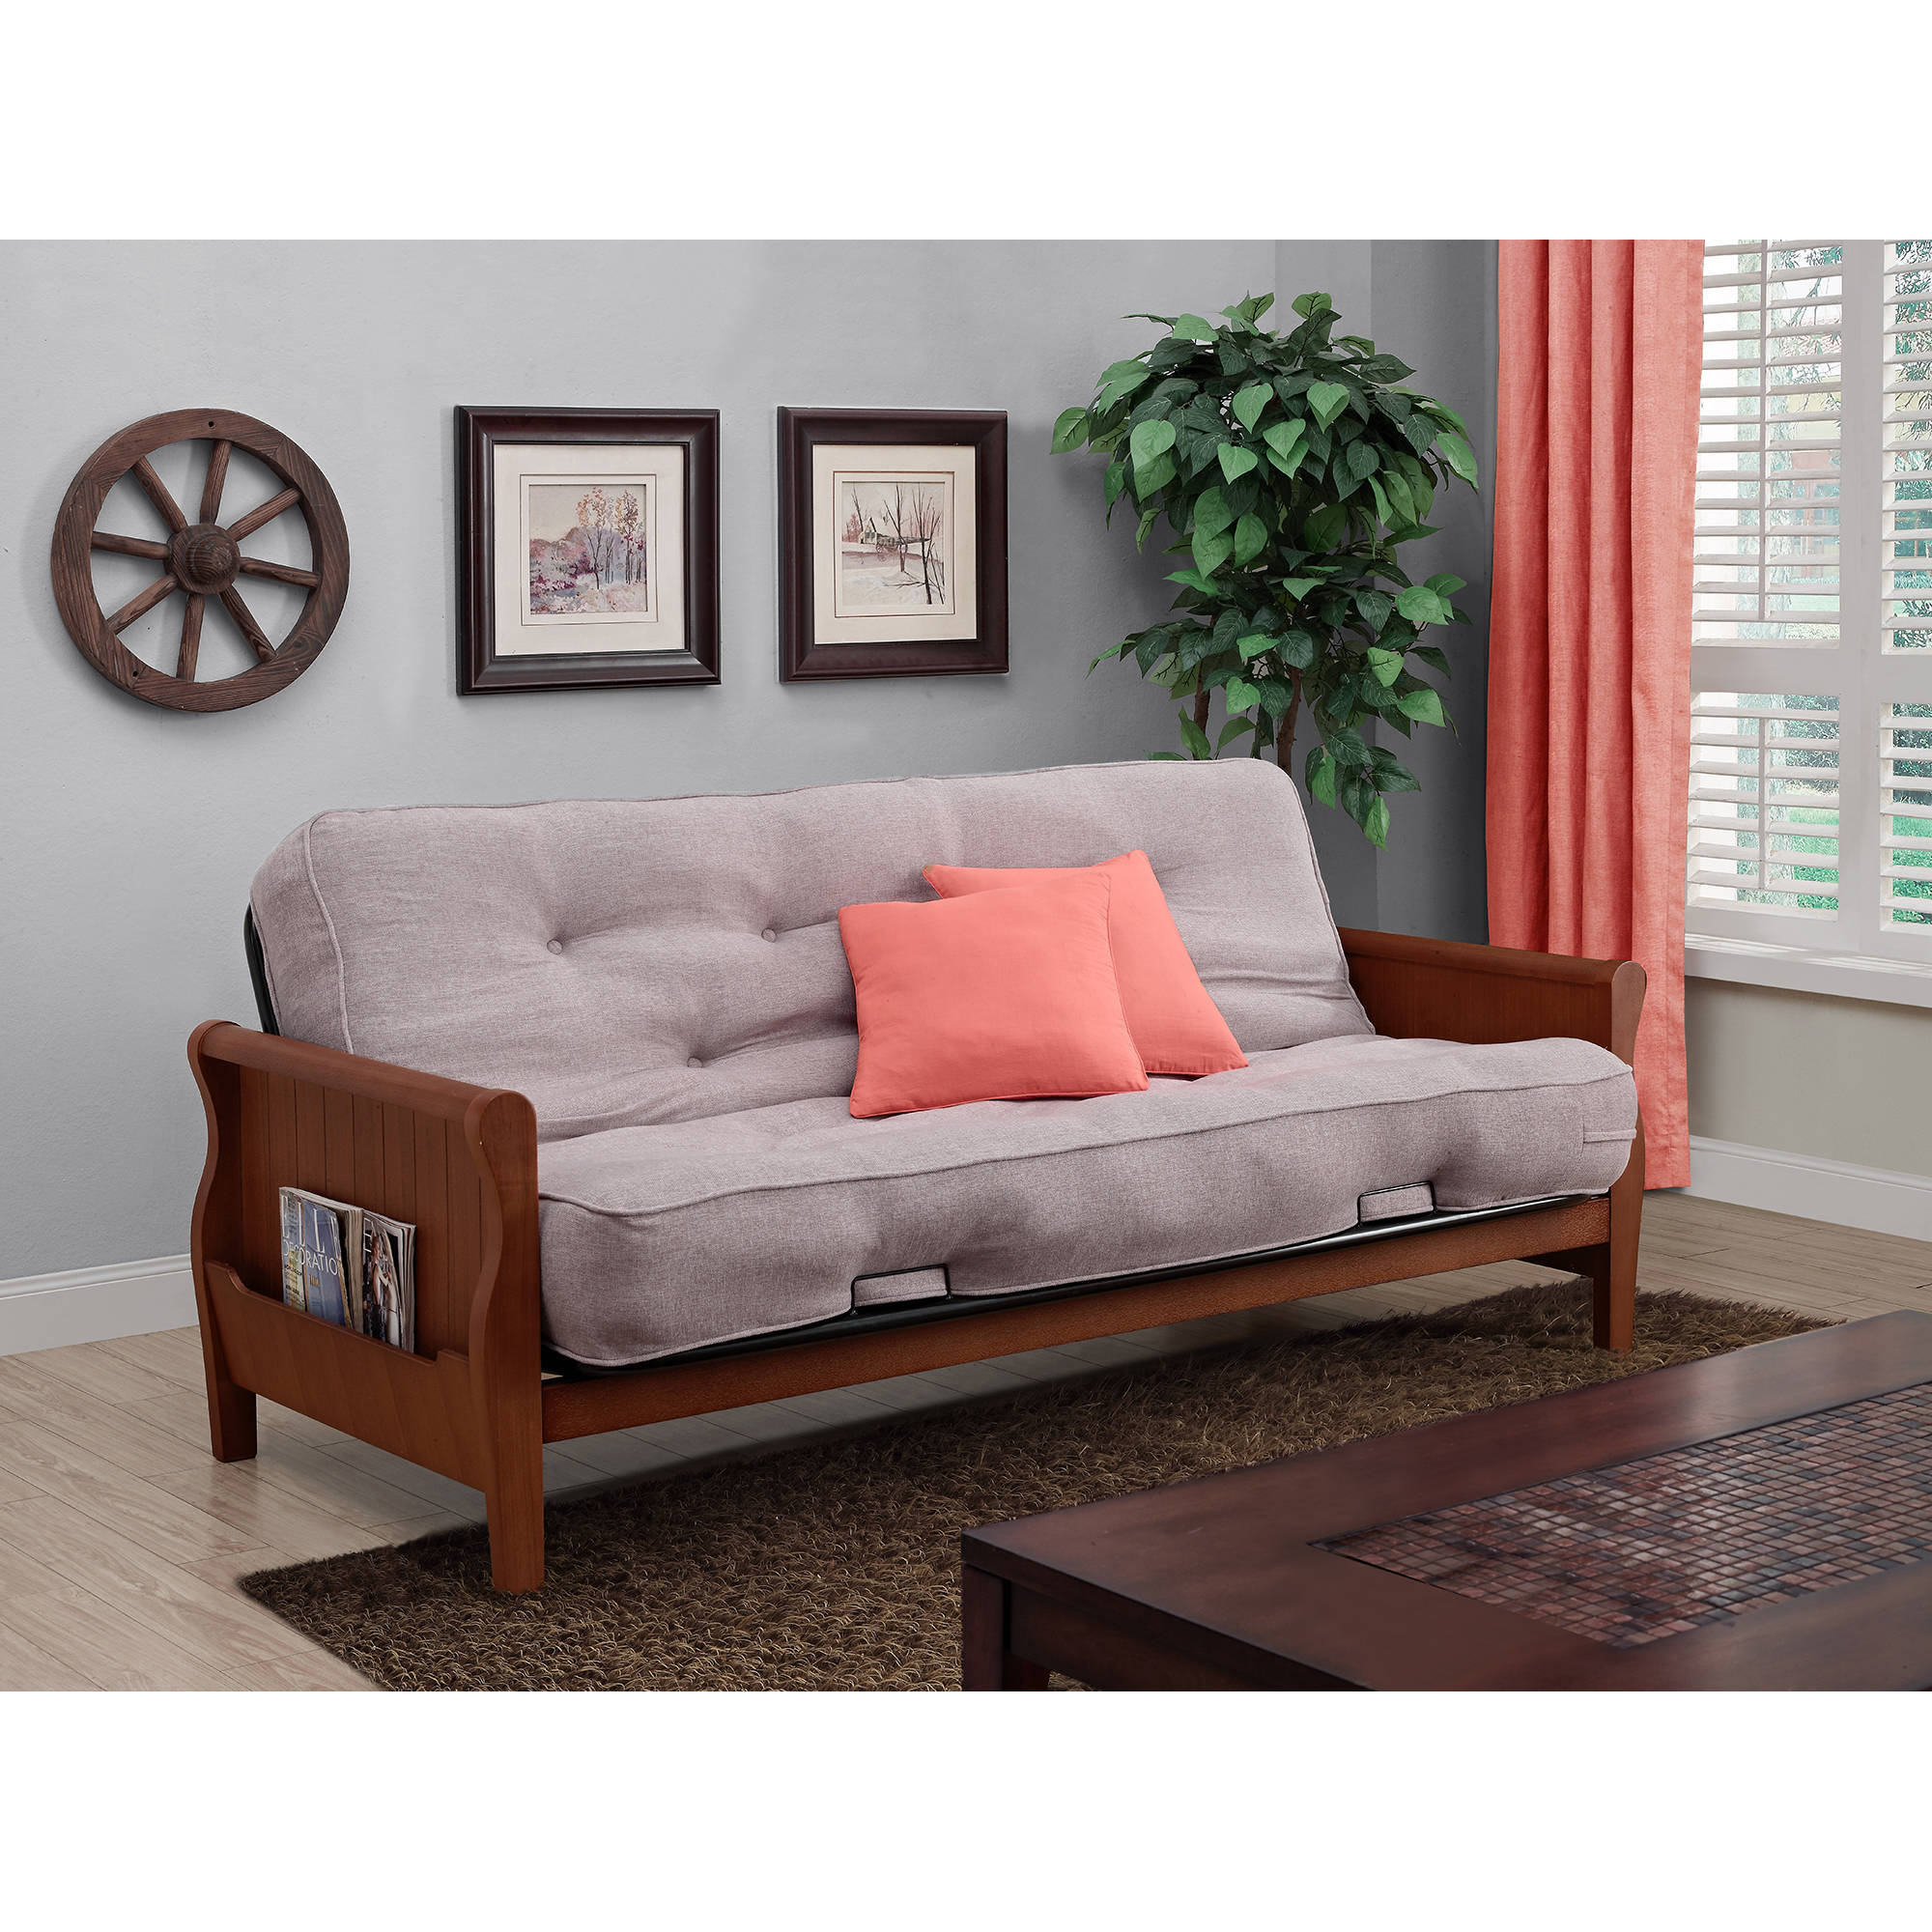 "Better Homes and Gardens Wood Arm Futon with 8"" Coil Mattress, Taupe"